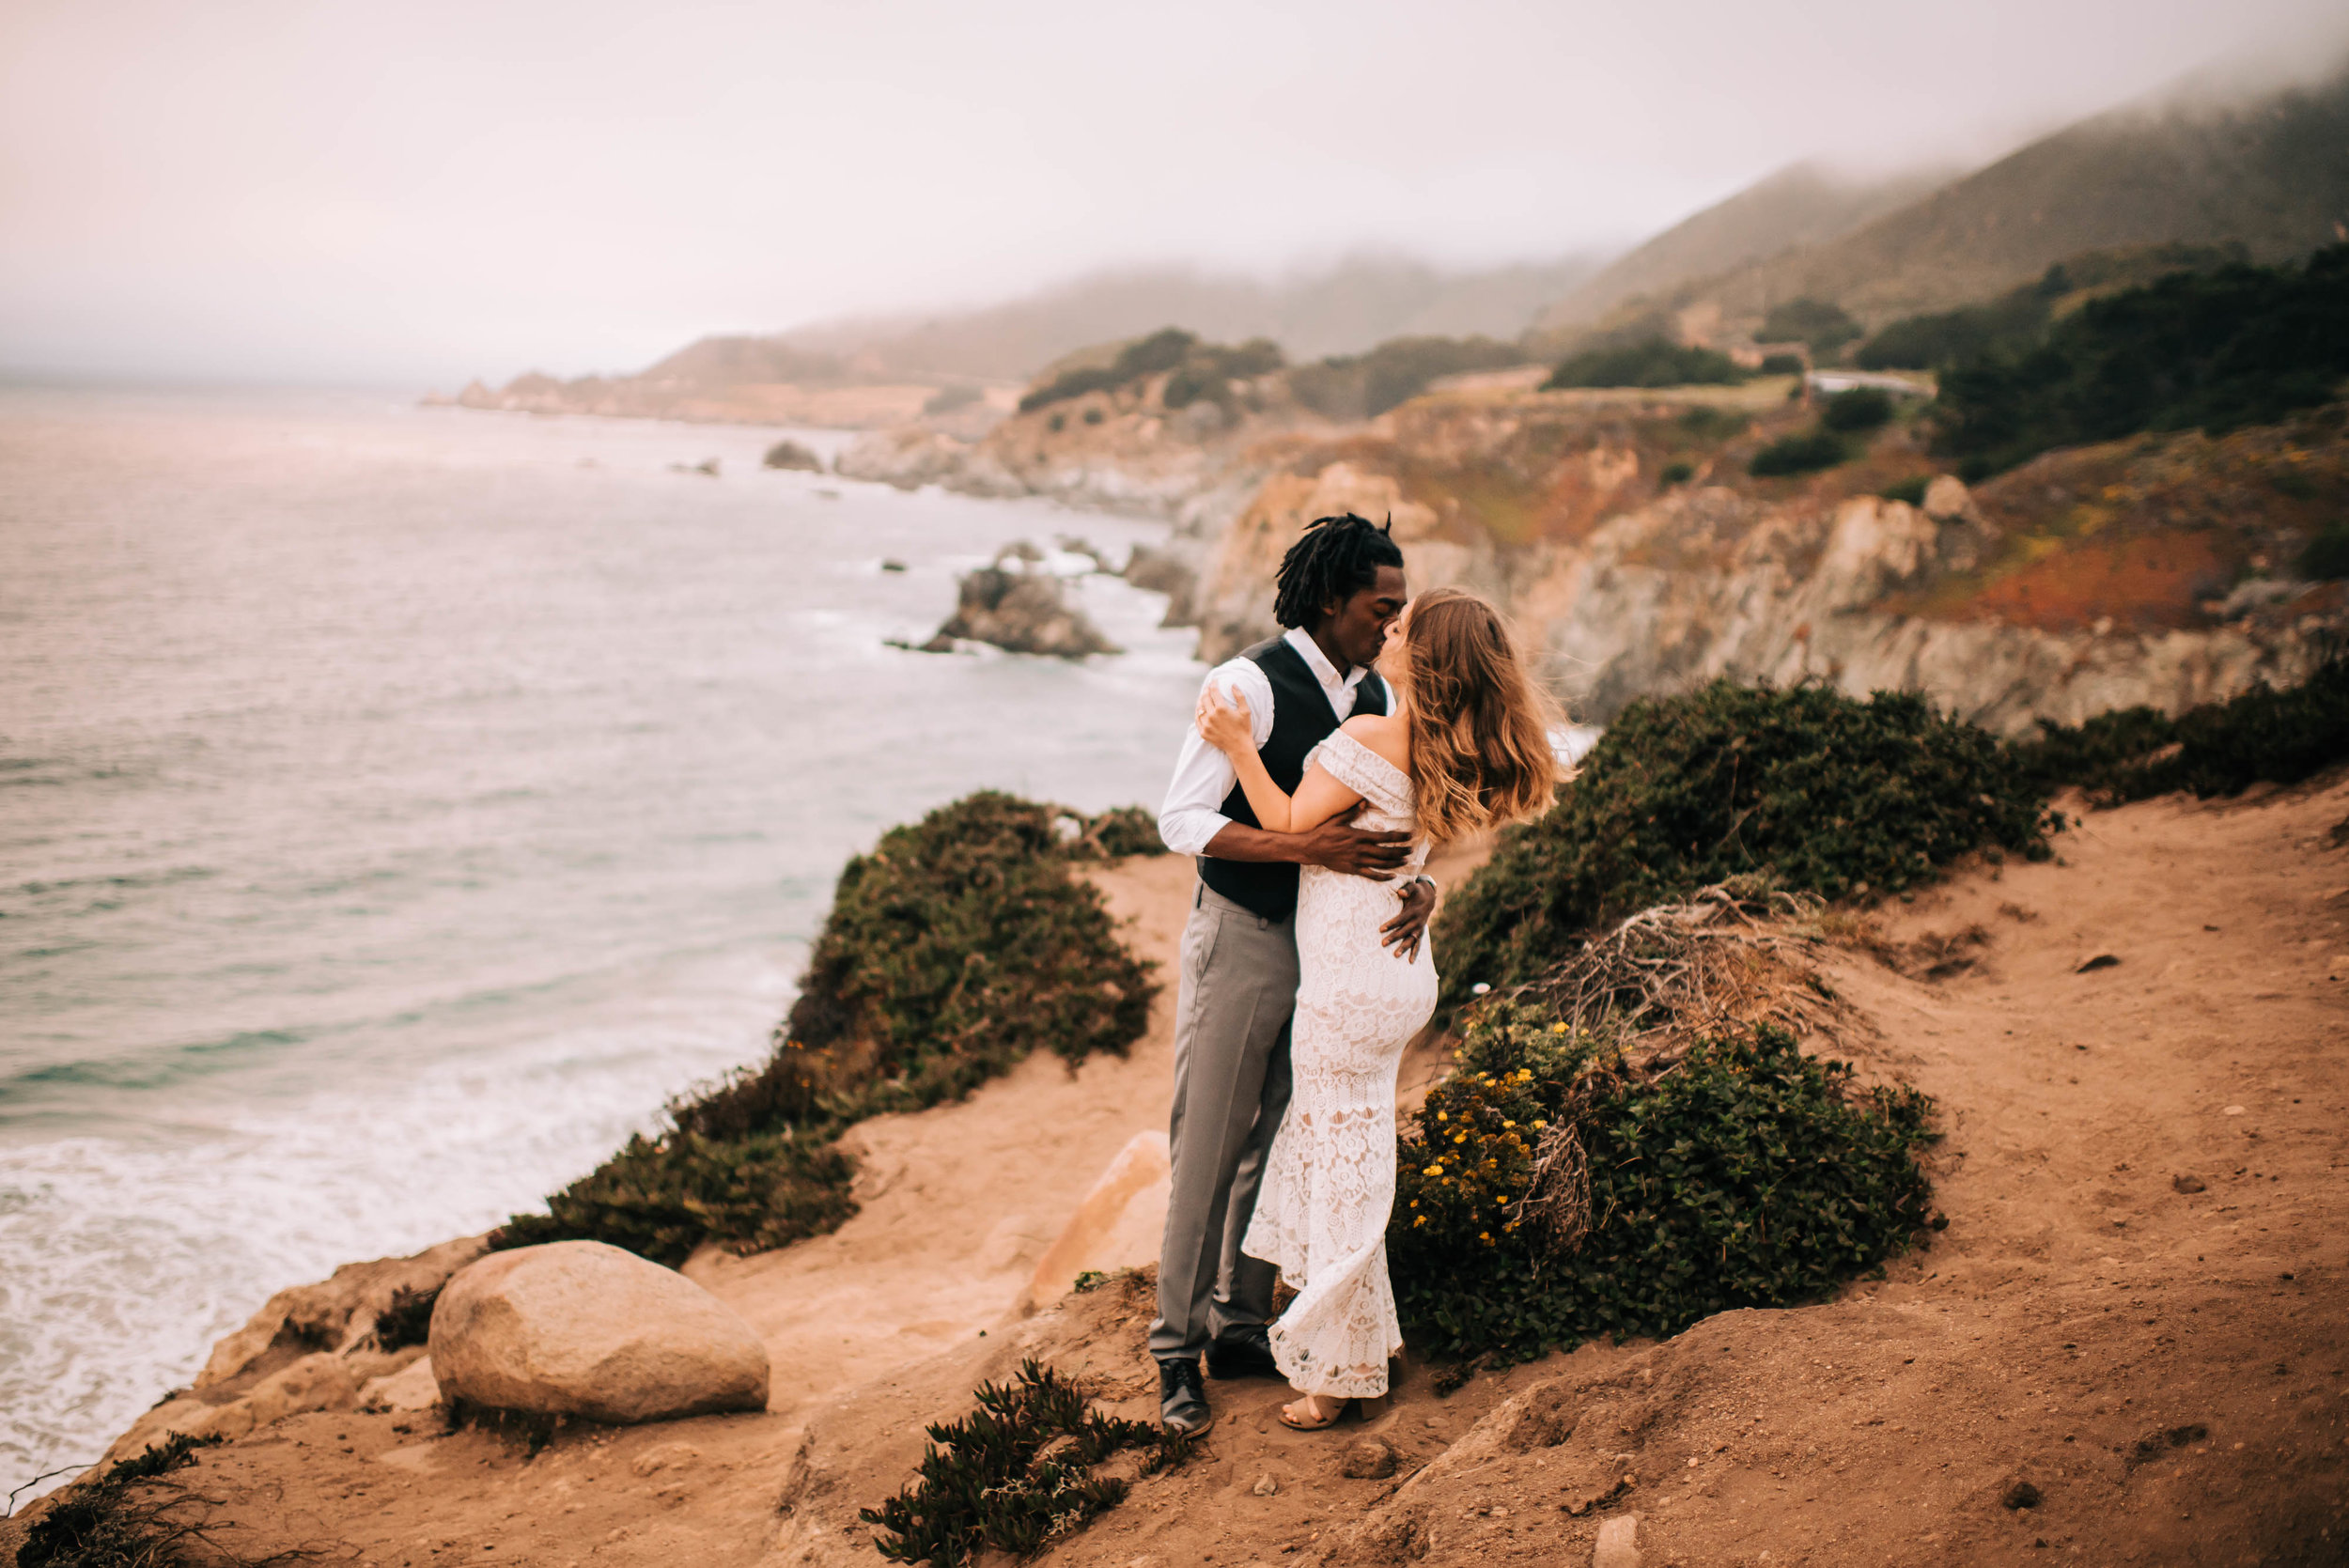 atlanta georgia big sur san francisco california bay area sf oakland wedding portrait adventure engageement nontraditional tattooed couple photographer-150.jpg